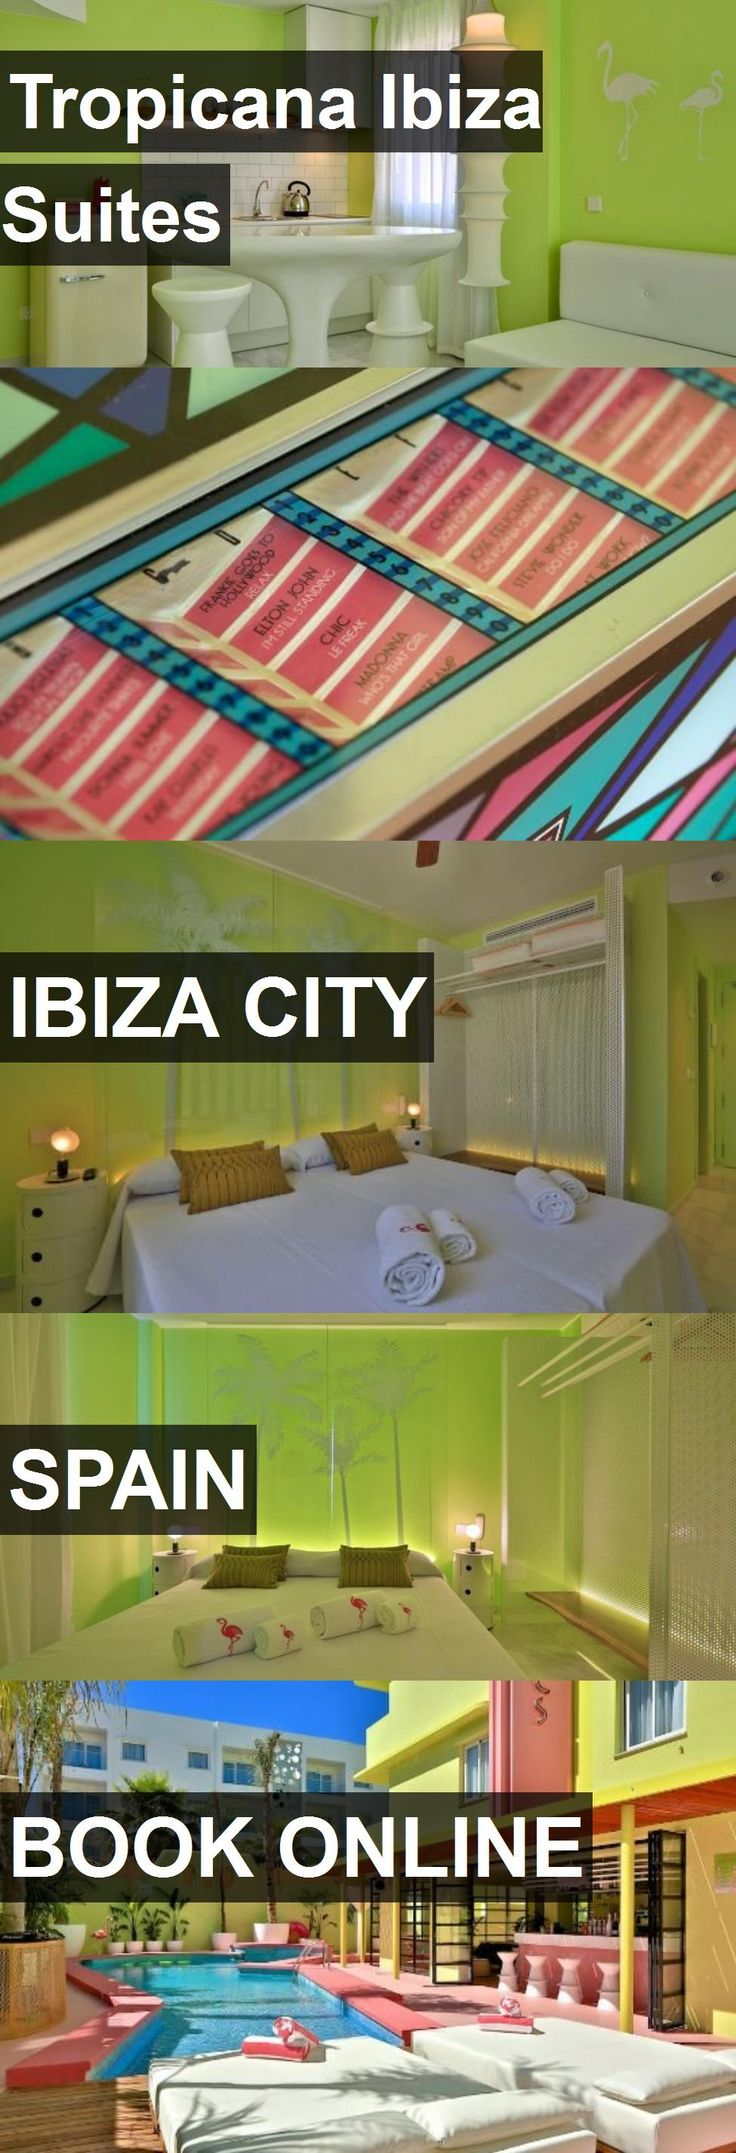 Hotel Tropicana Ibiza Suites in Ibiza City, Spain. For more information, photos, reviews and best prices please follow the link. #Spain #IbizaCity #TropicanaIbizaSuites #hotel #travel #vacation